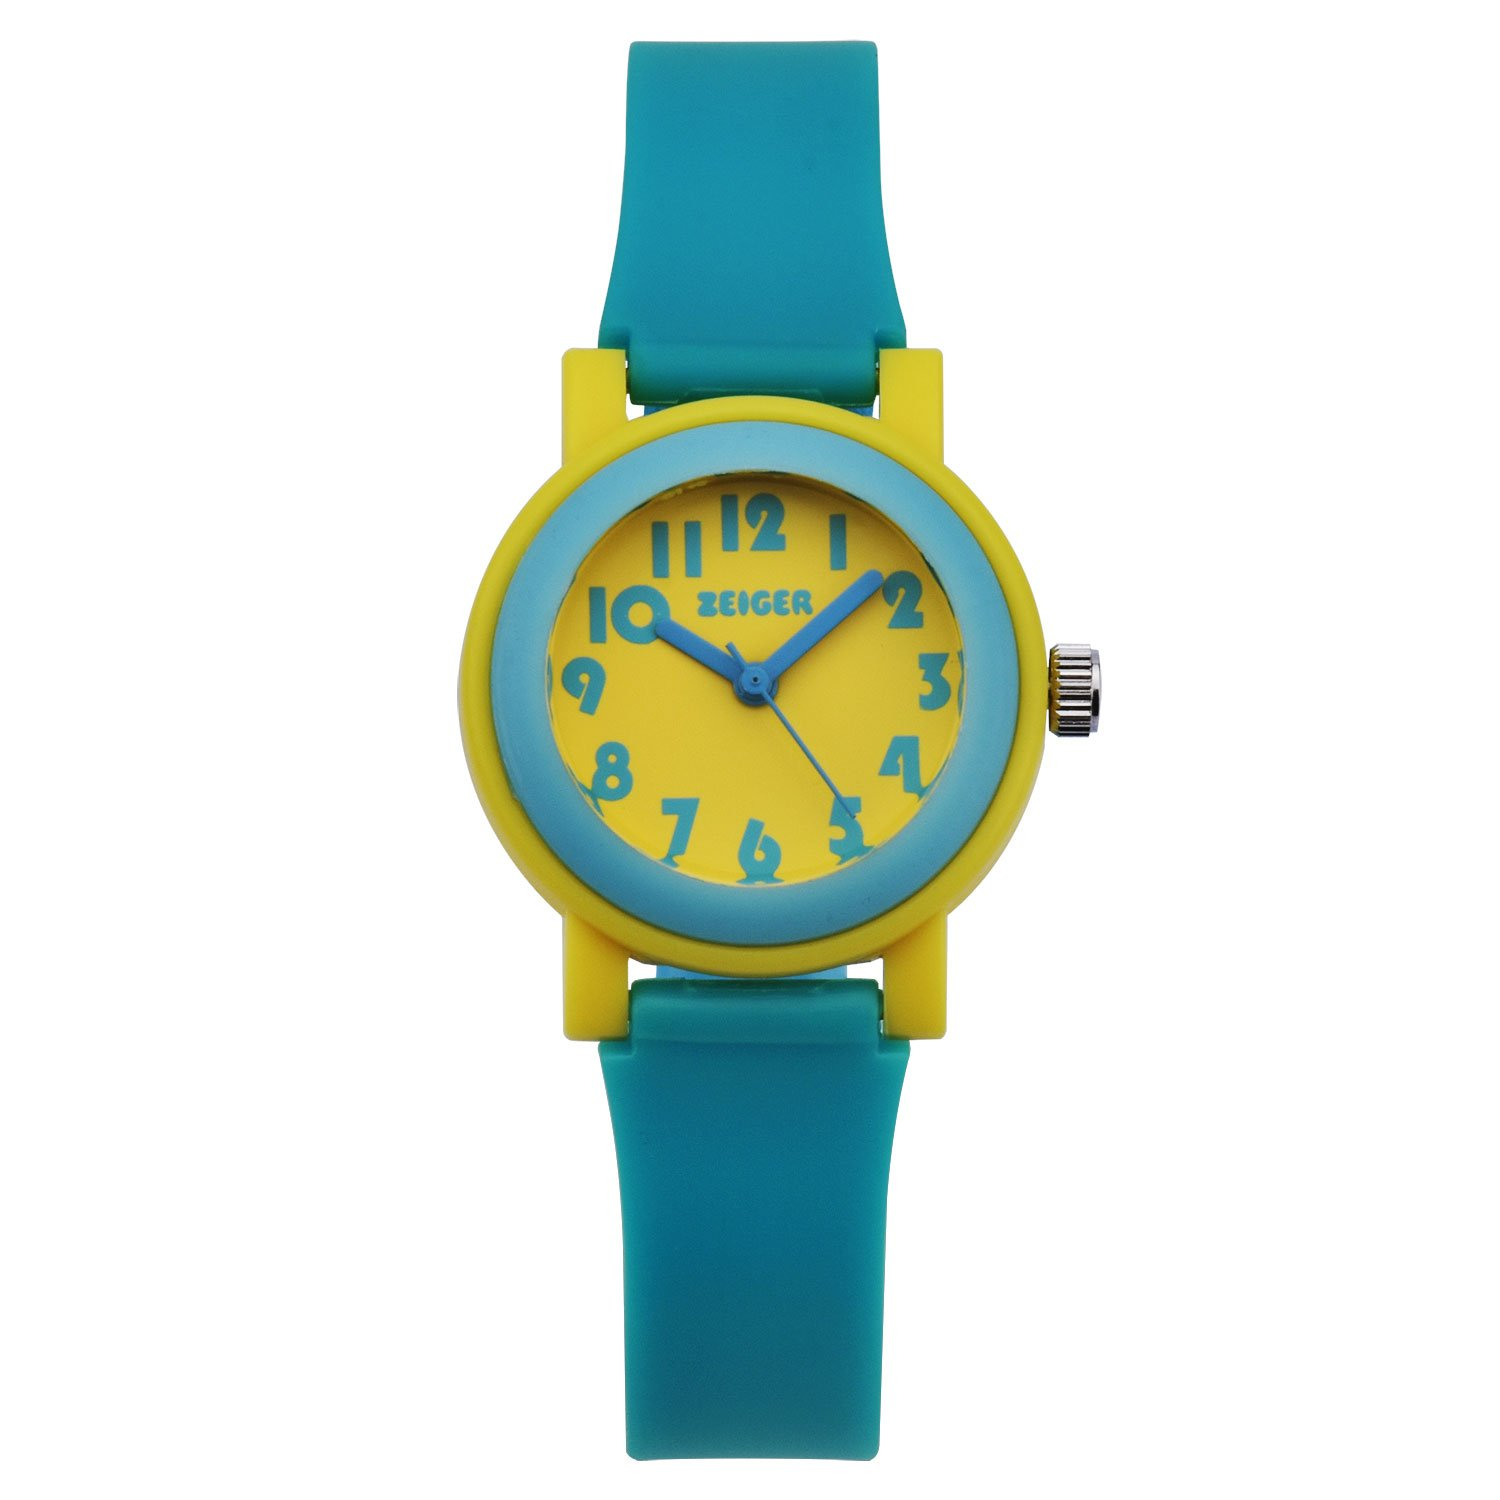 ZEIGER Kids Children Young Teen Girls Time Teacher New Little Watch with Silicon Band (Cyanine Blue) KW074 by Zeiger